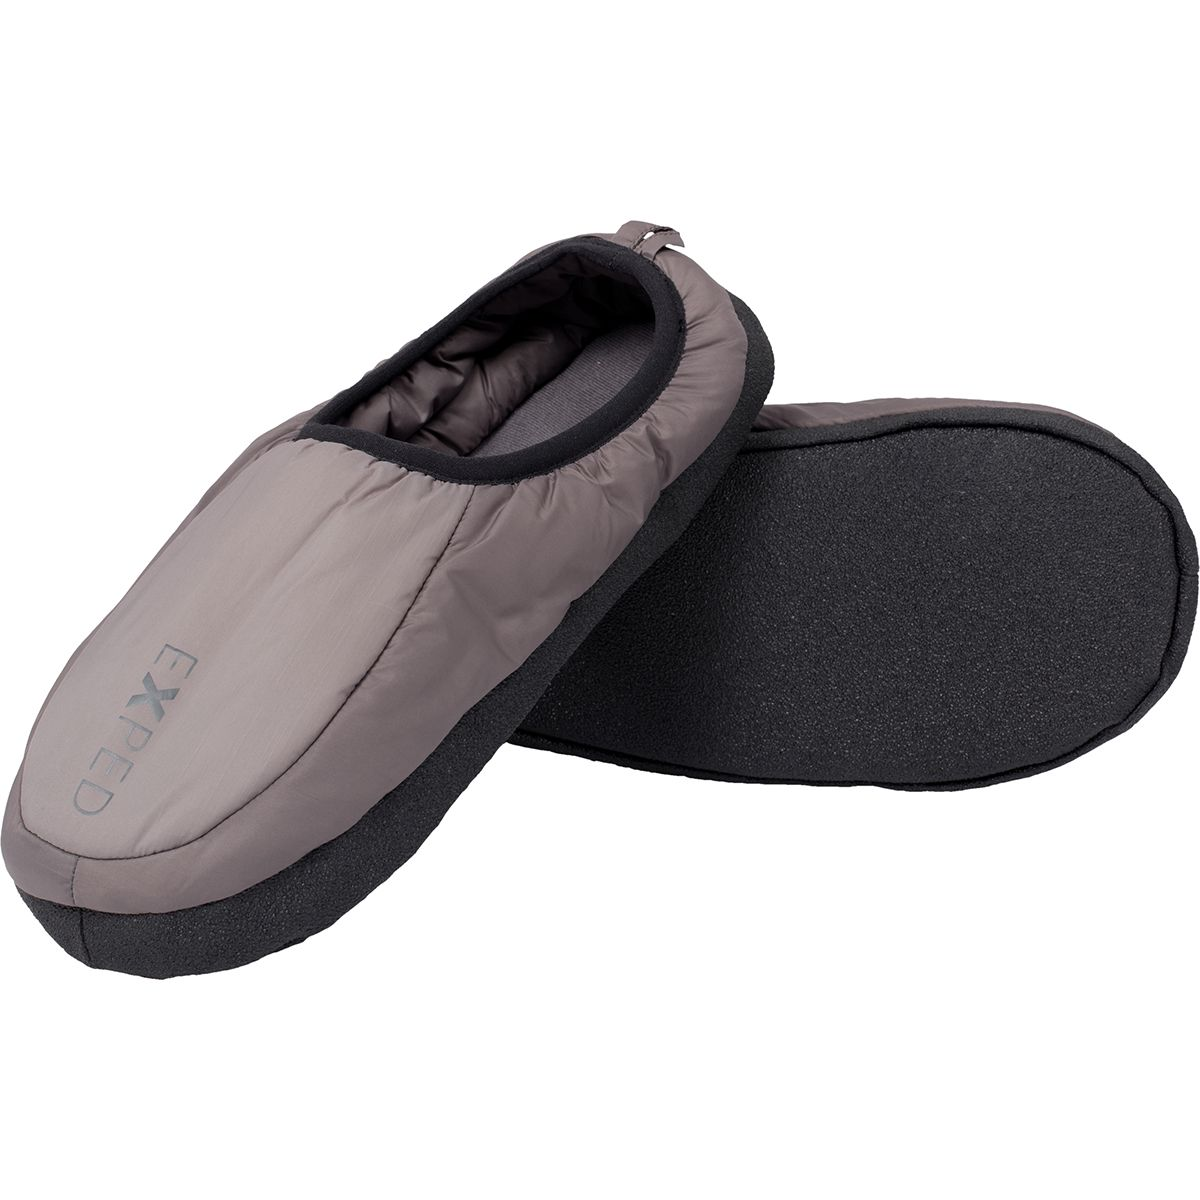 Exped Camp Slipper Hausschuhe Grau